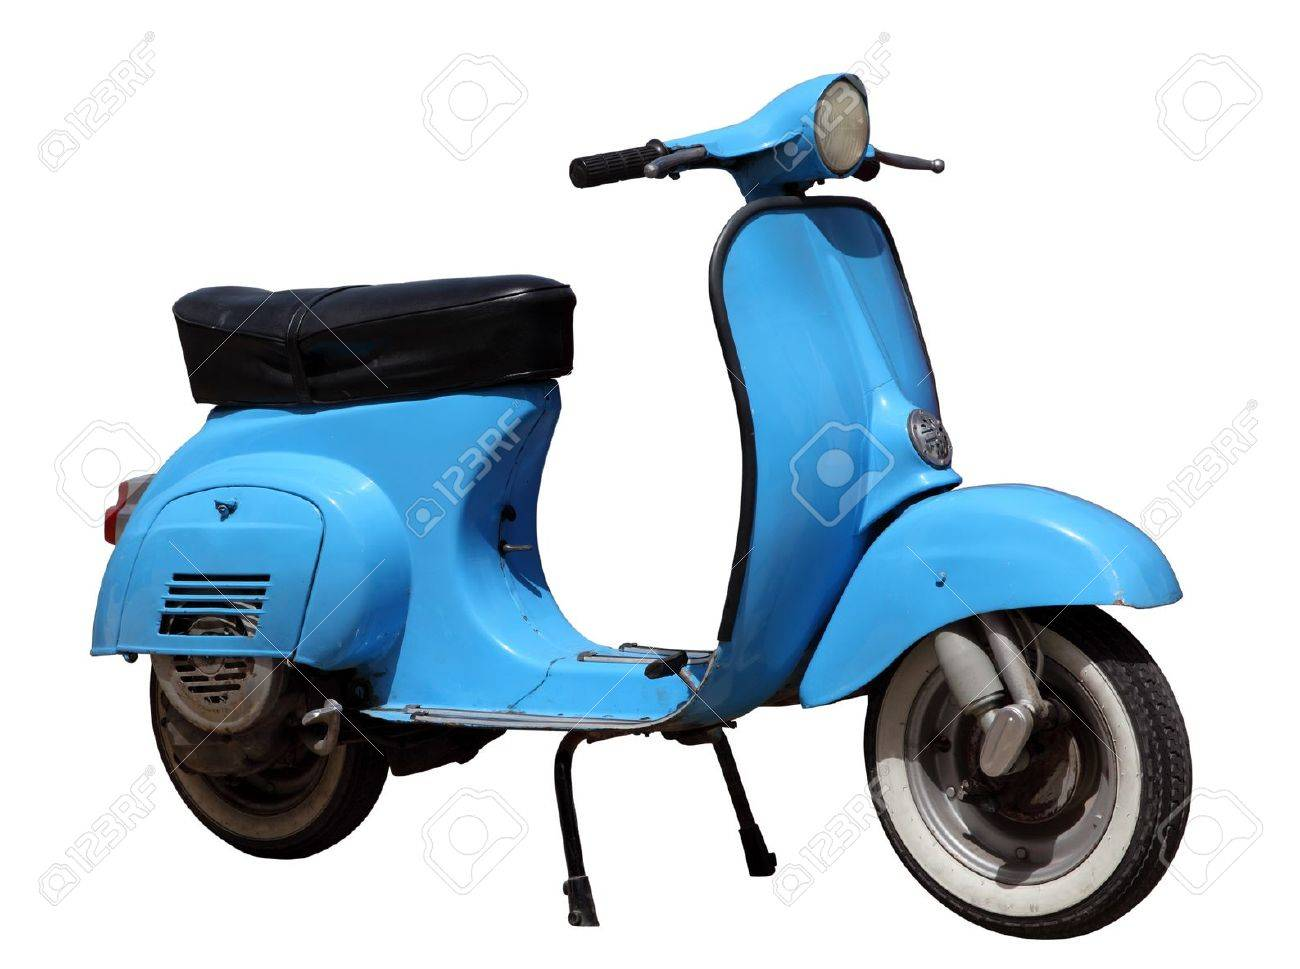 Blue vintage scooter isolated over white background Stock Photo - 16605650